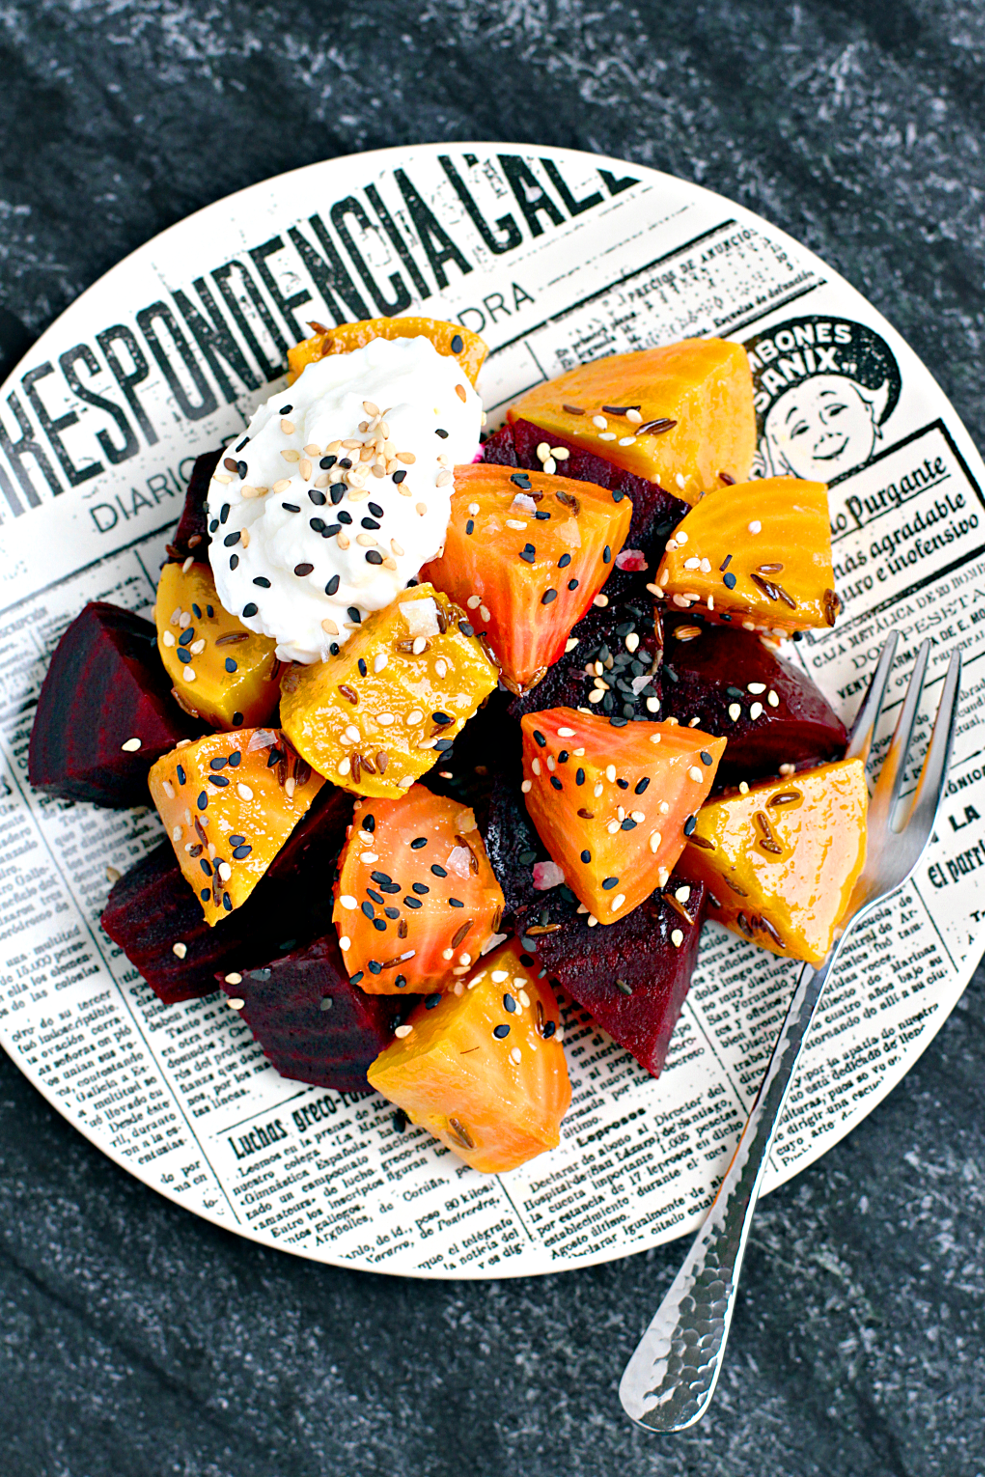 Image of roasted and marinated beets with fromage blanc.